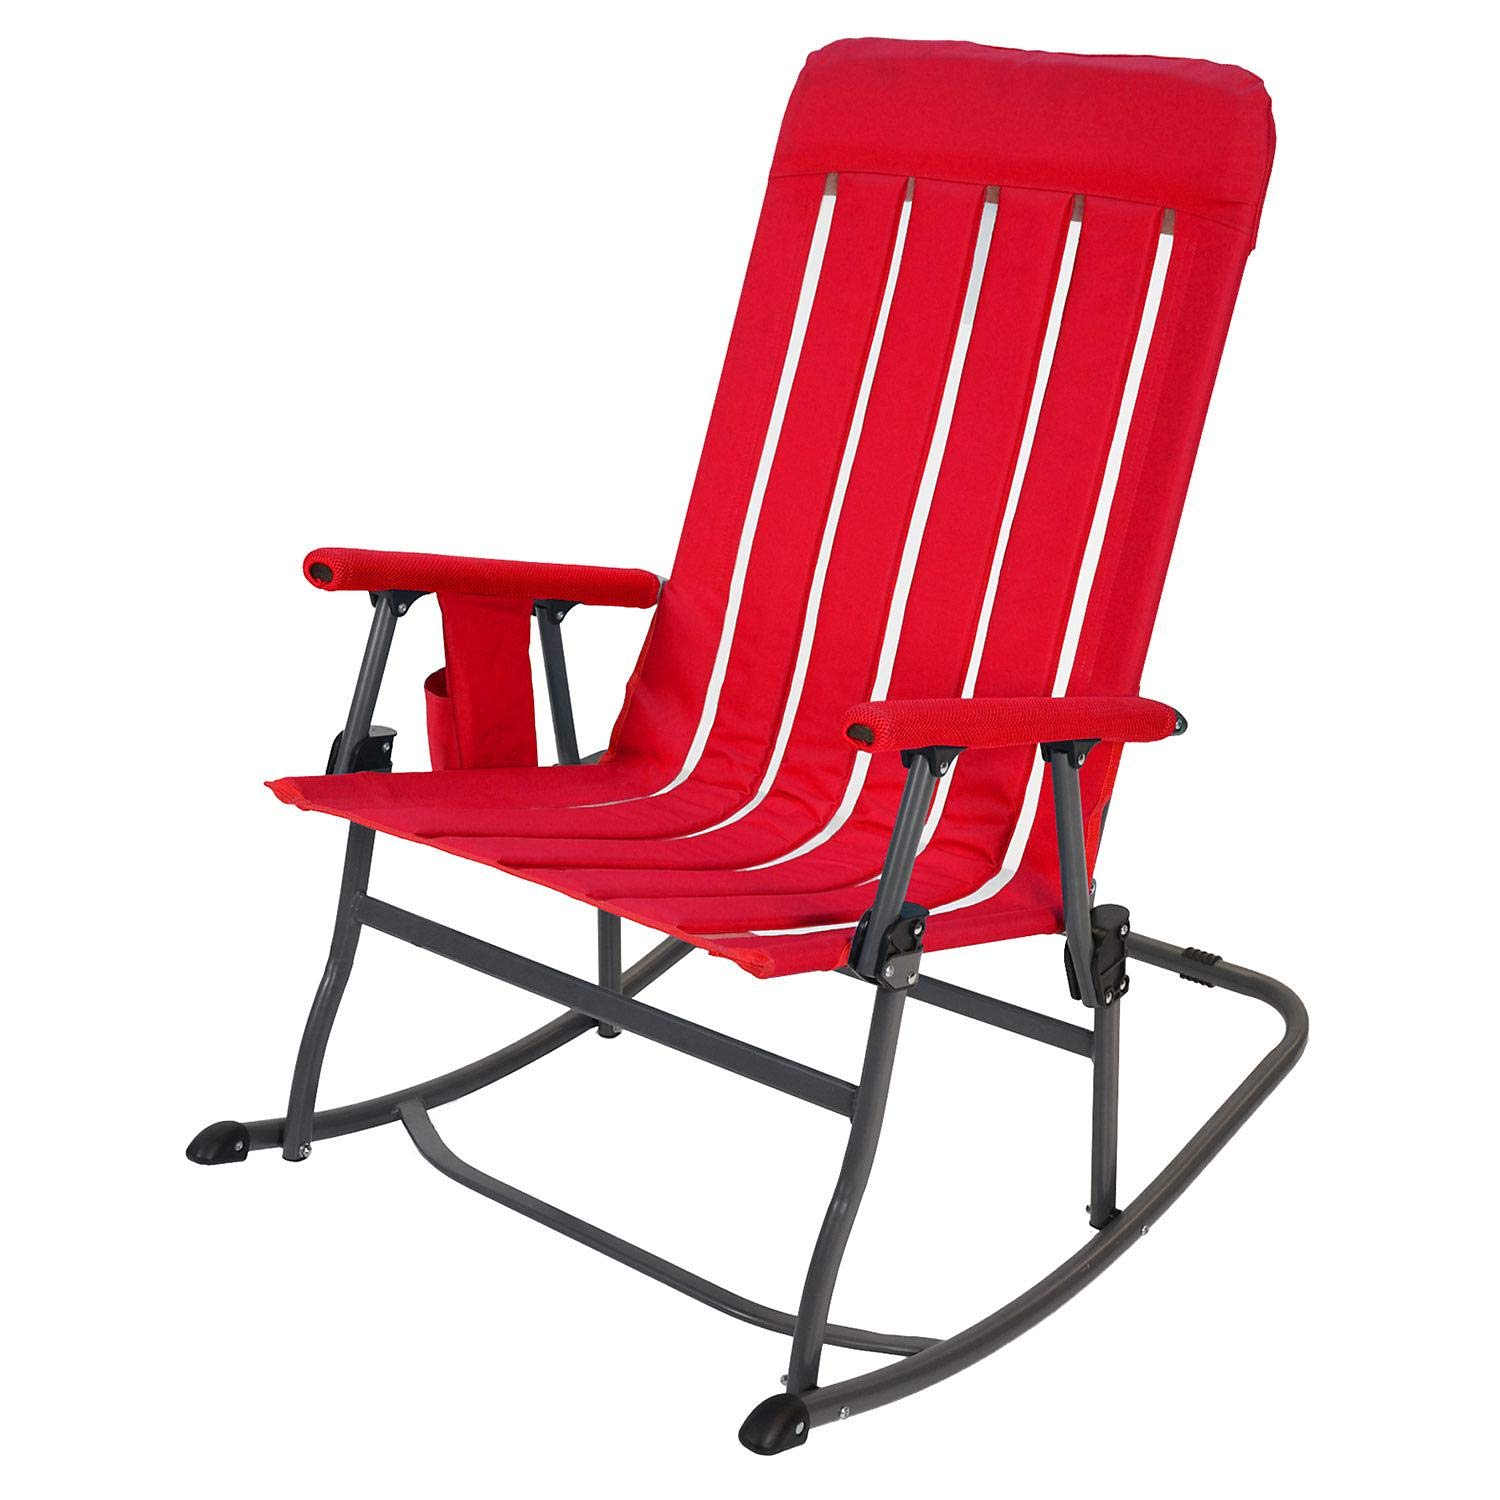 Member's Mark Portable Rocking Chair - Red by Member's Mark